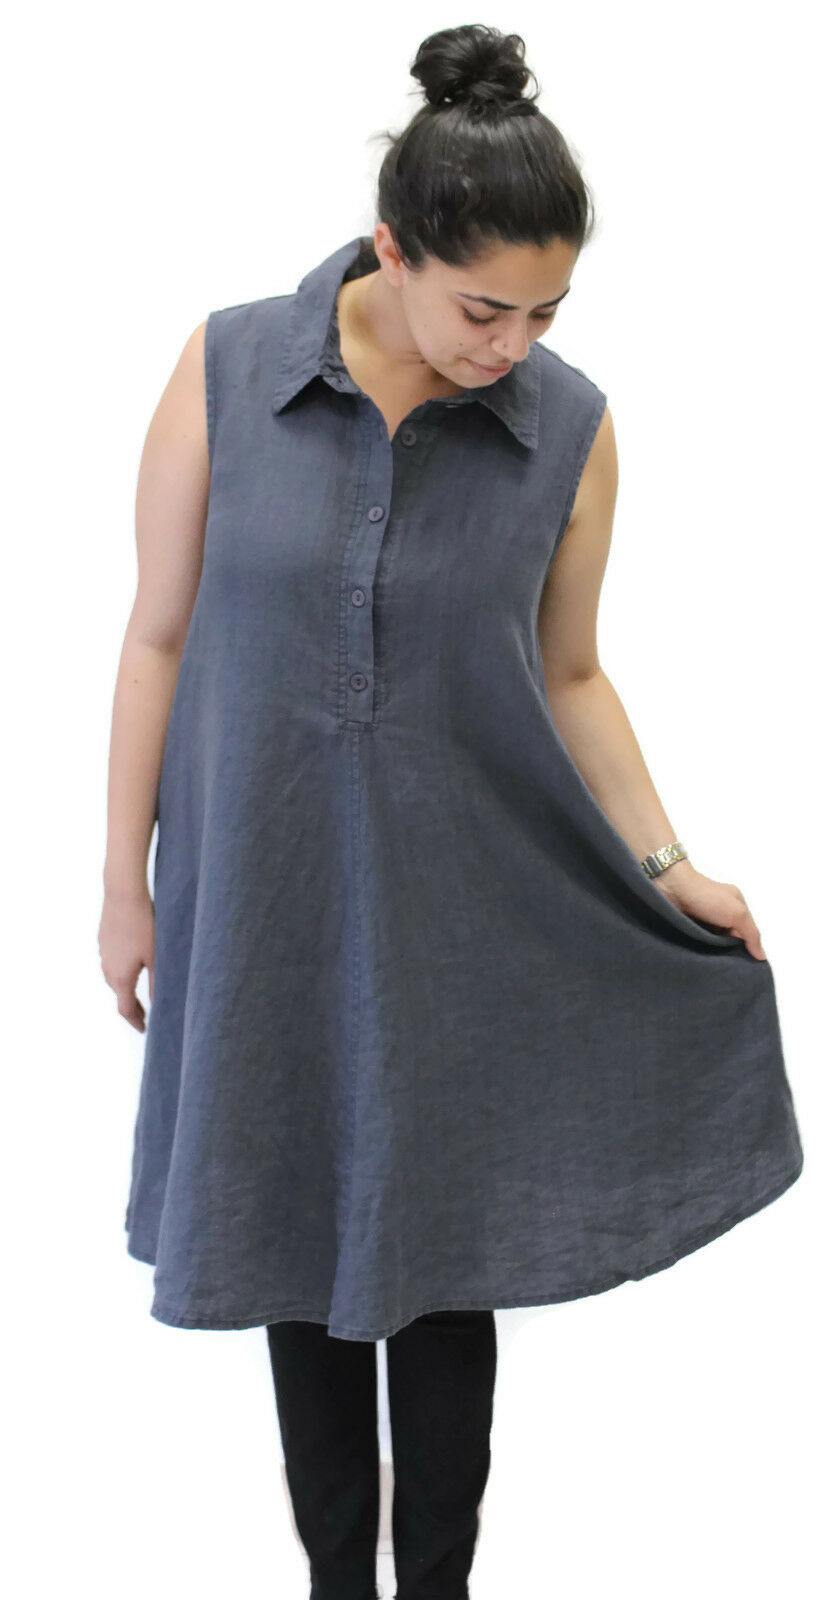 Flax Designs Linen Speakeasy Tunic Dress  NWT  Caviar Washed  Größe  Large